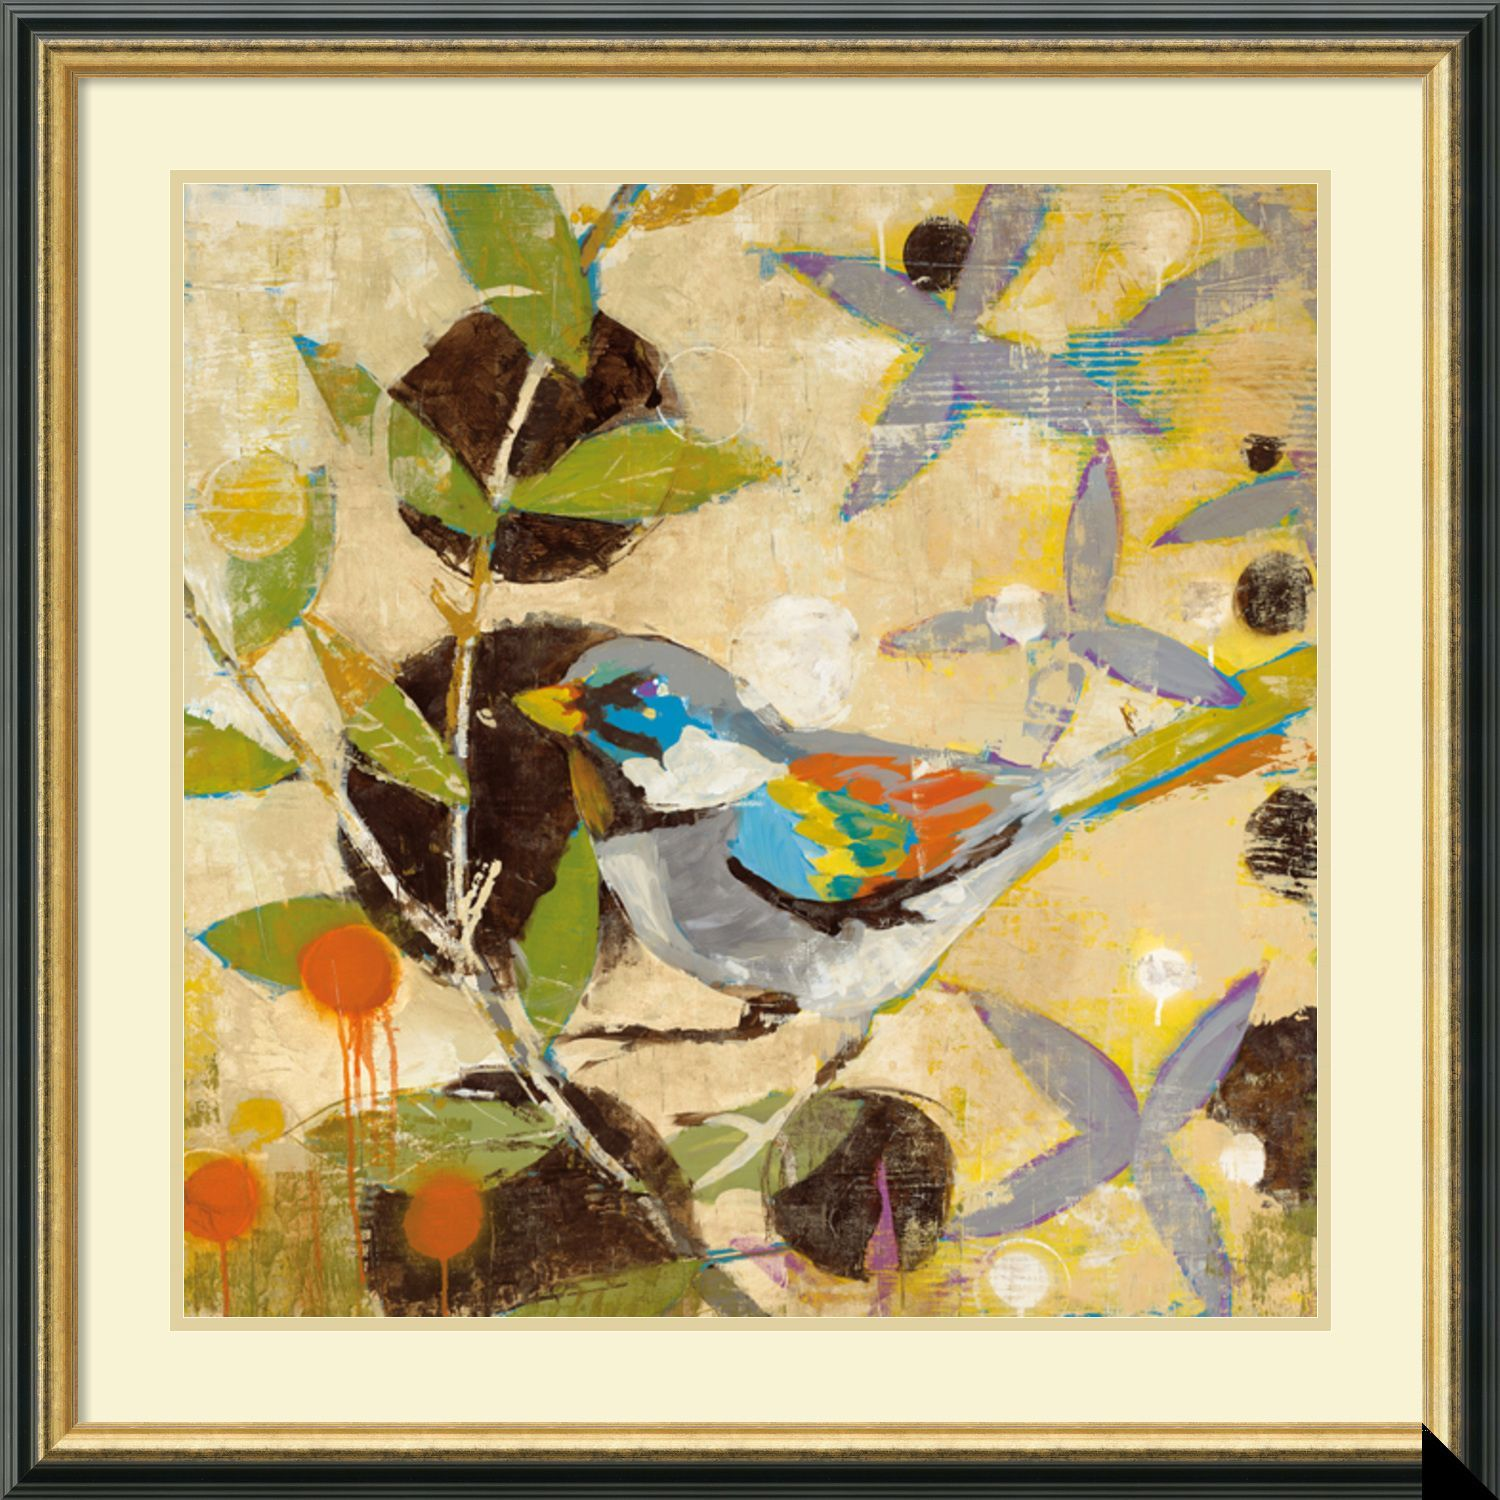 Liz Jardine \'Flew The Coop I\' Framed Art Print 32 x 32-inch | Liz ...